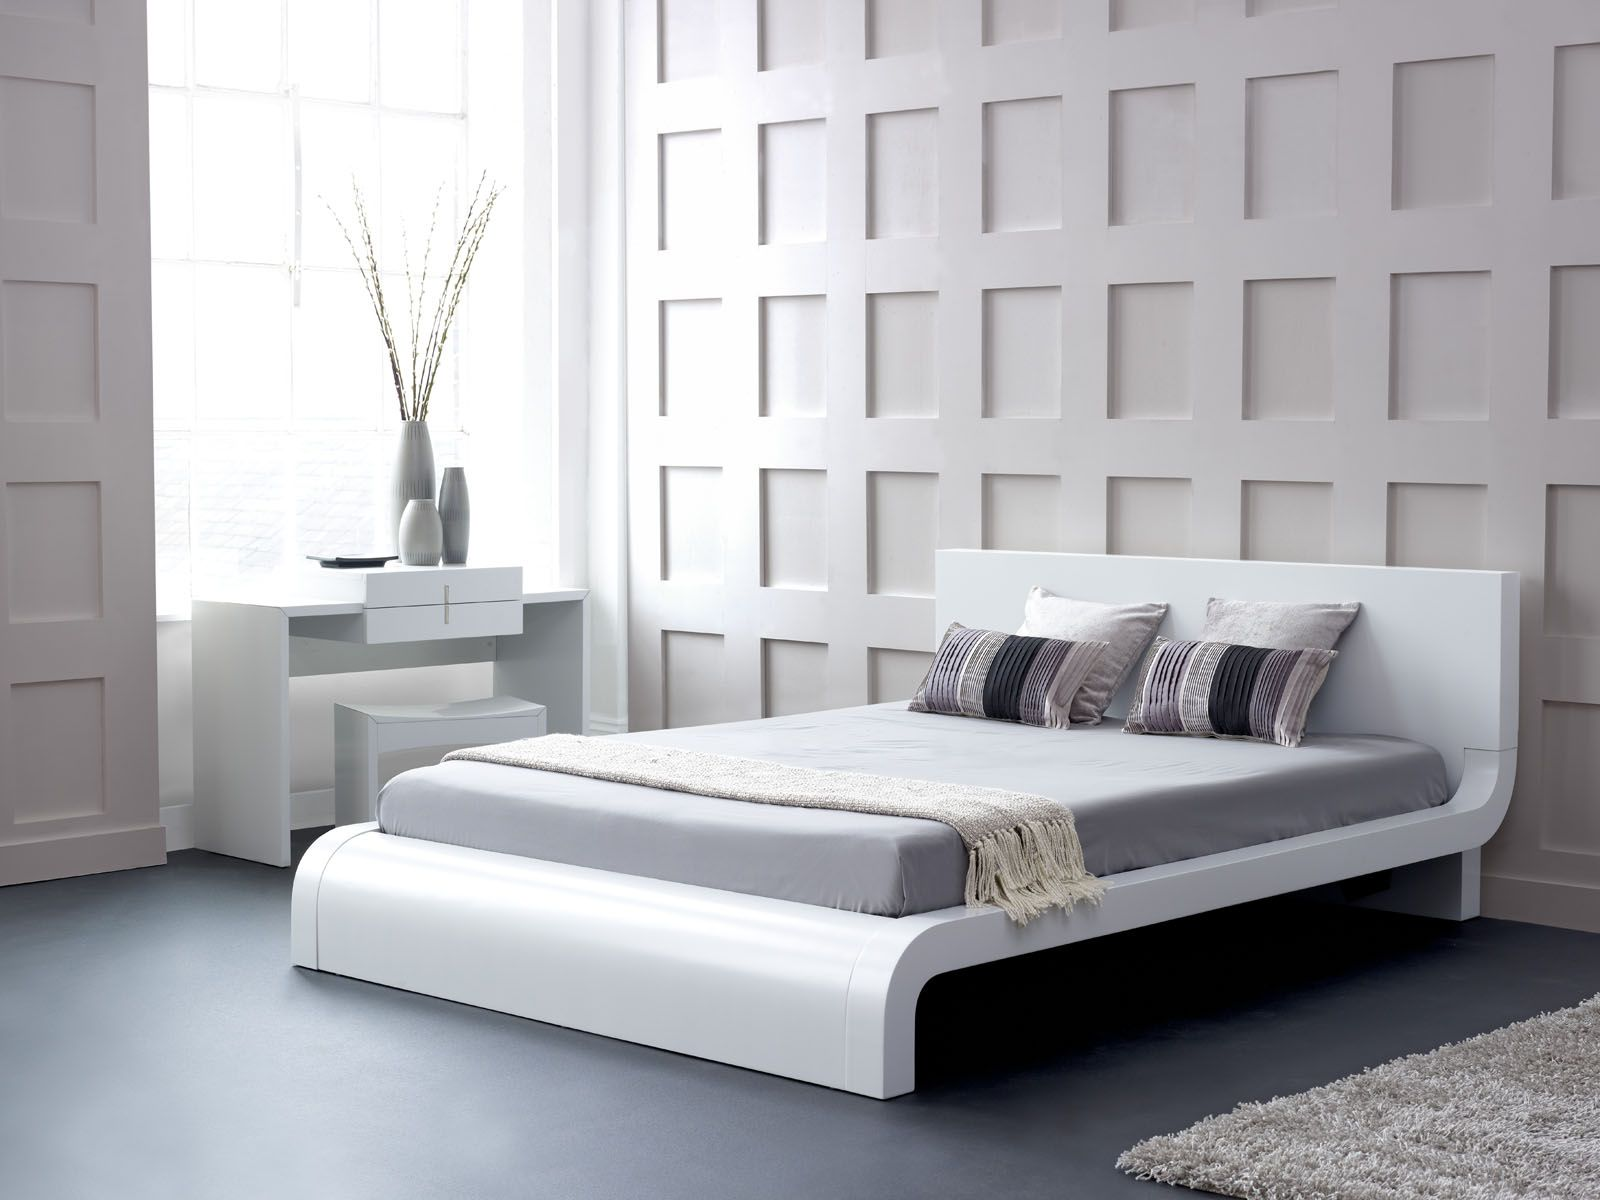 Contemporary Modern Bedroom Furniture Learning Tower With  Great Selection Of